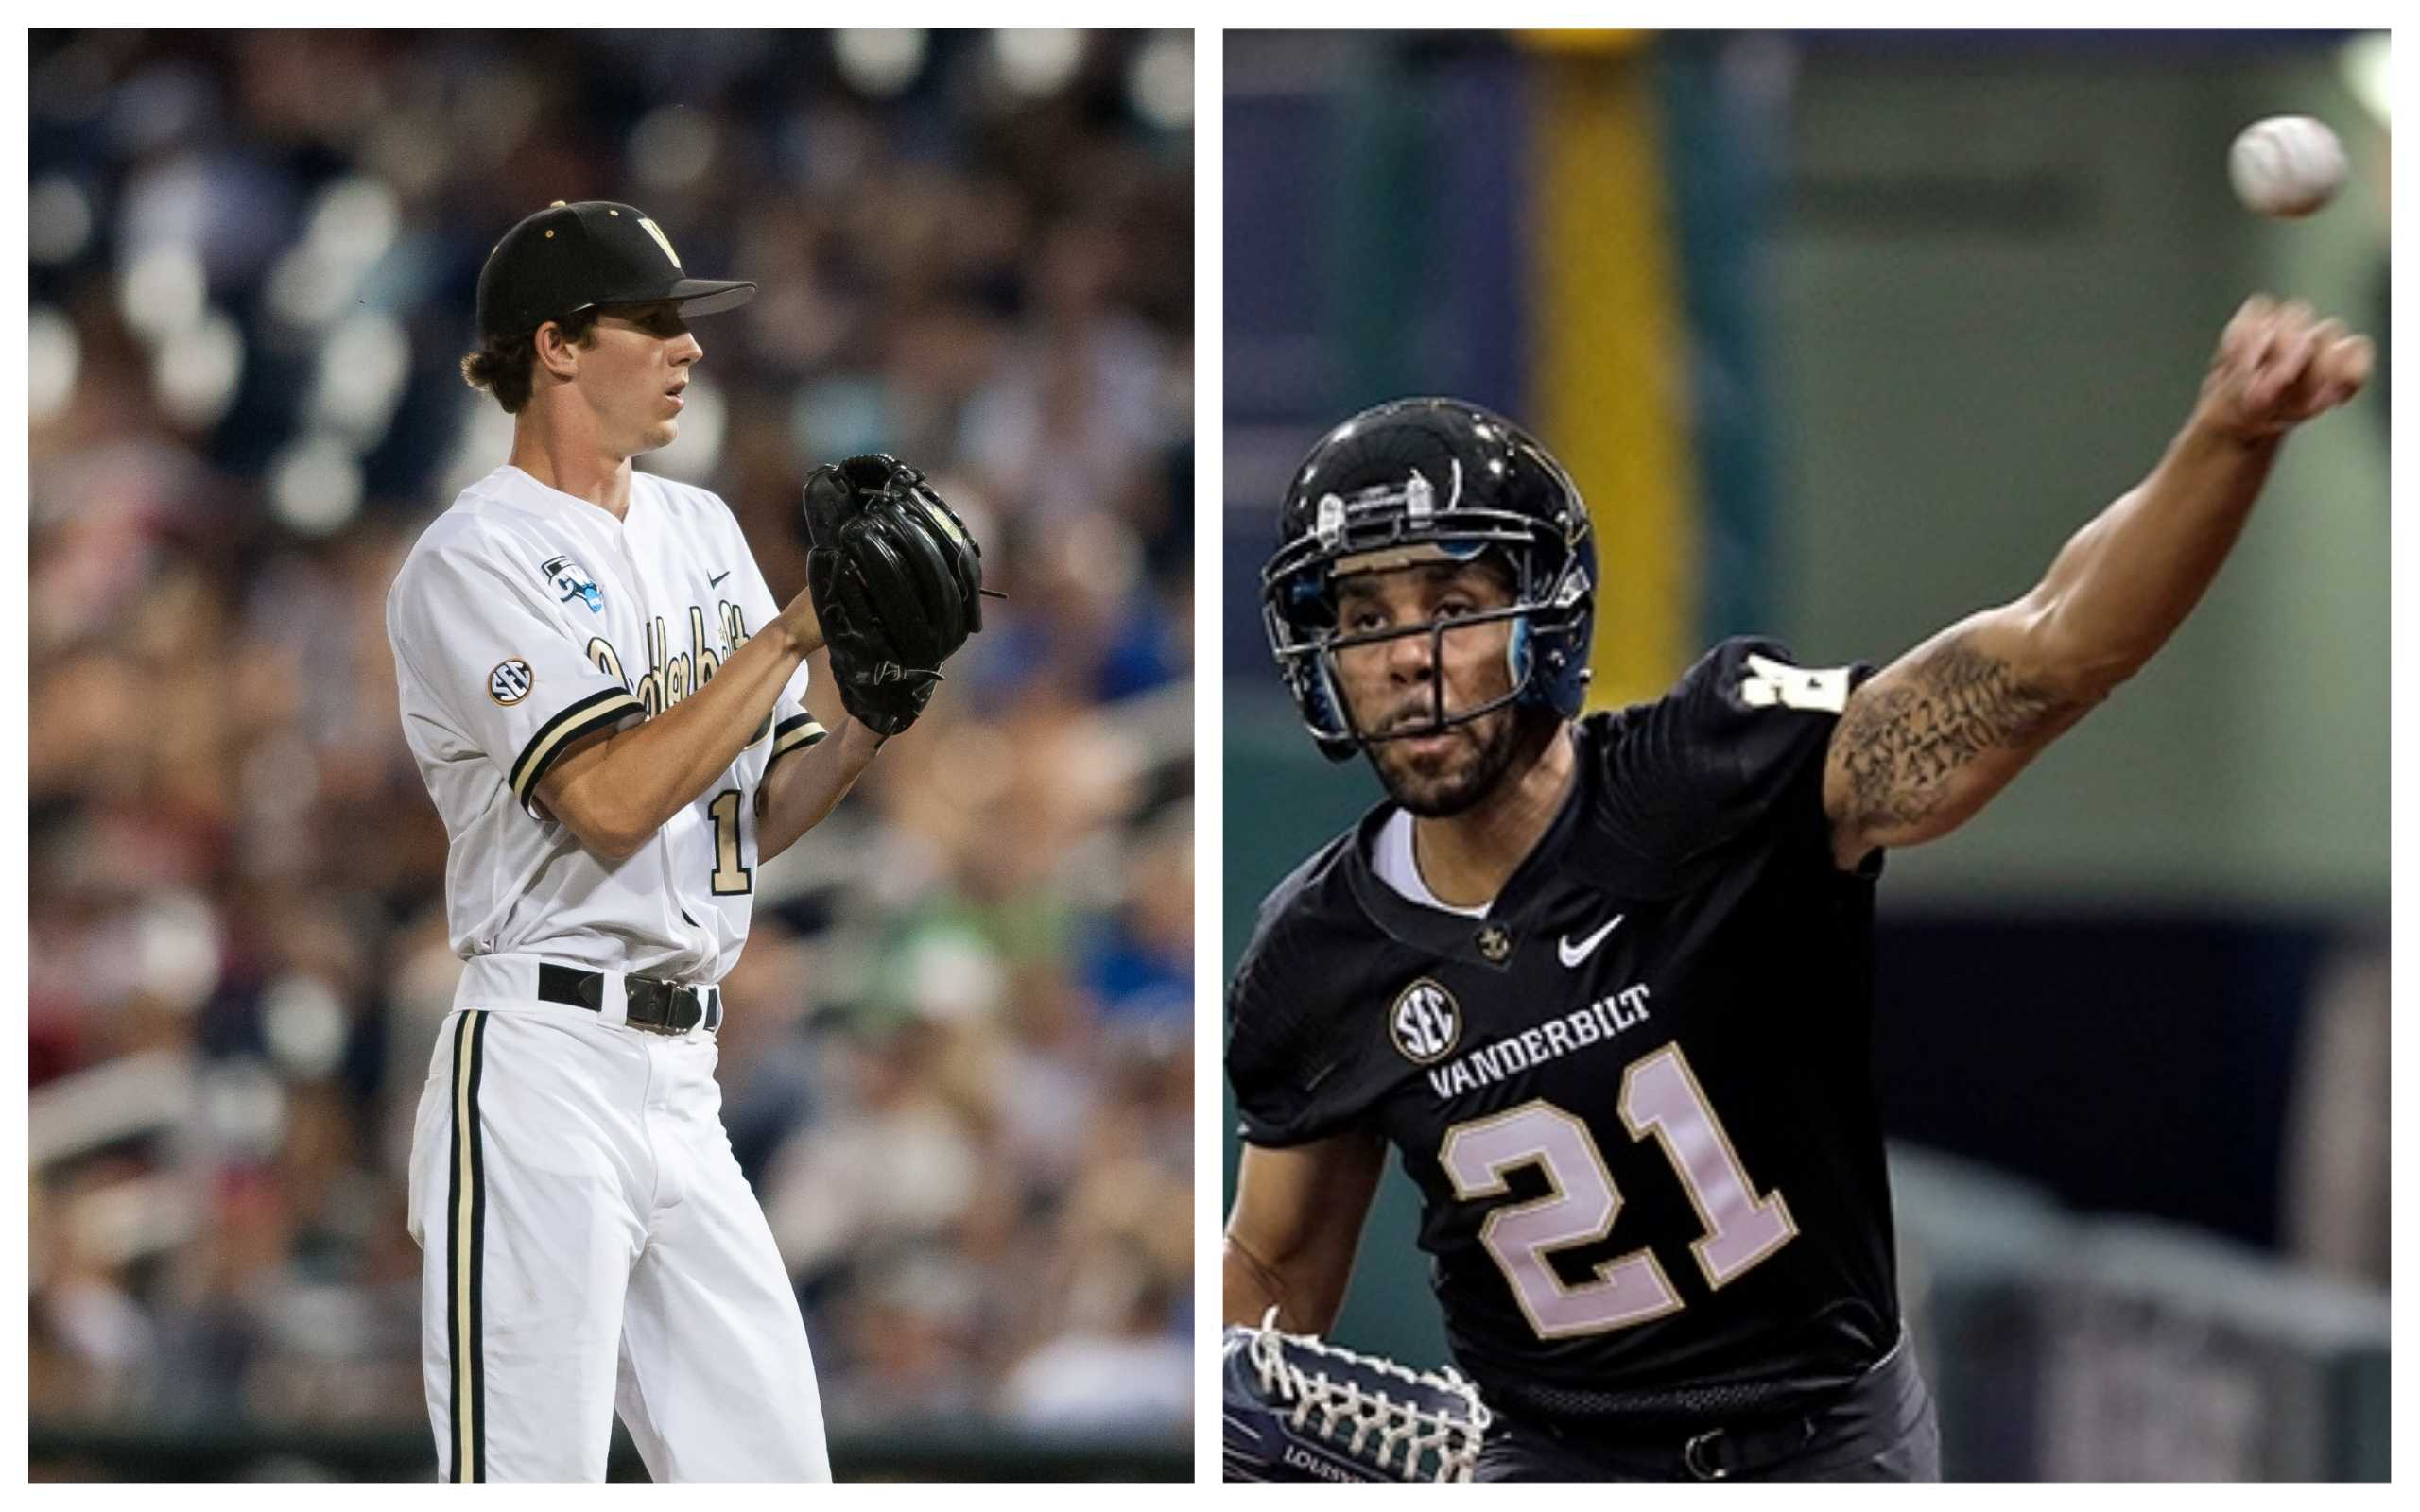 Photos via Vanderbilt Athletics and USA Today Sports